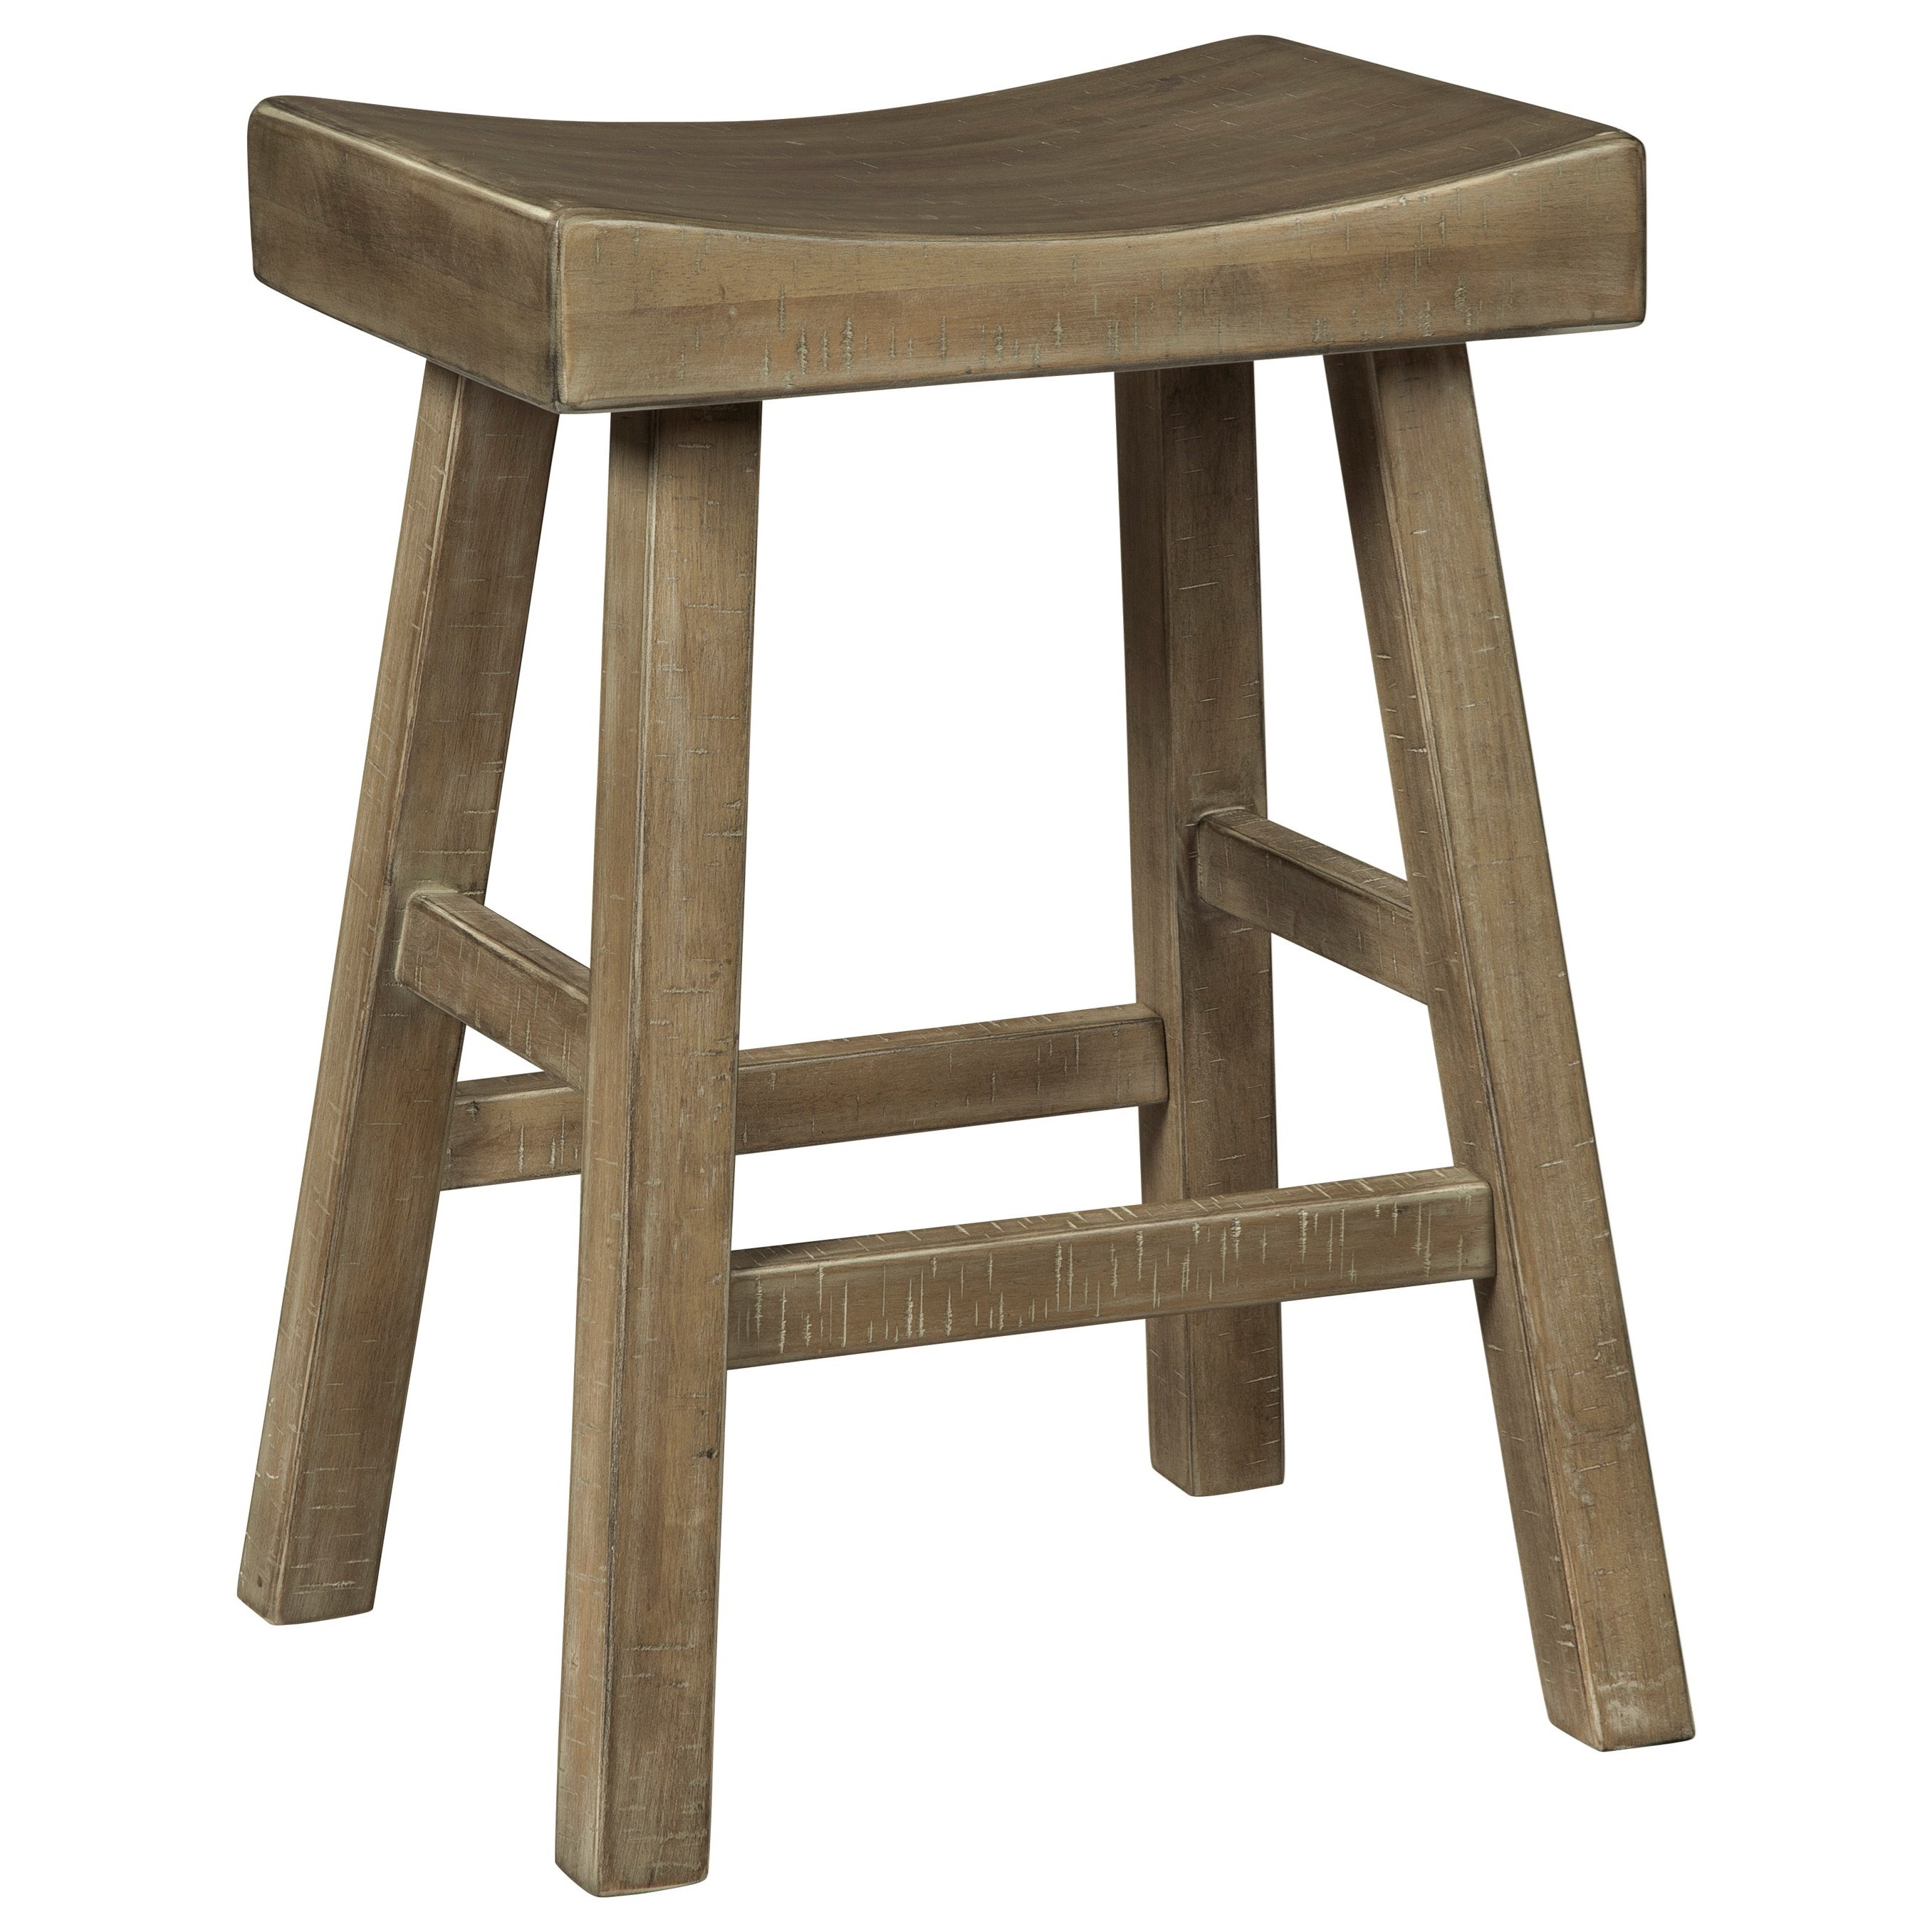 Glosco Stool by Signature Design by Ashley at Zak's Warehouse Clearance Center